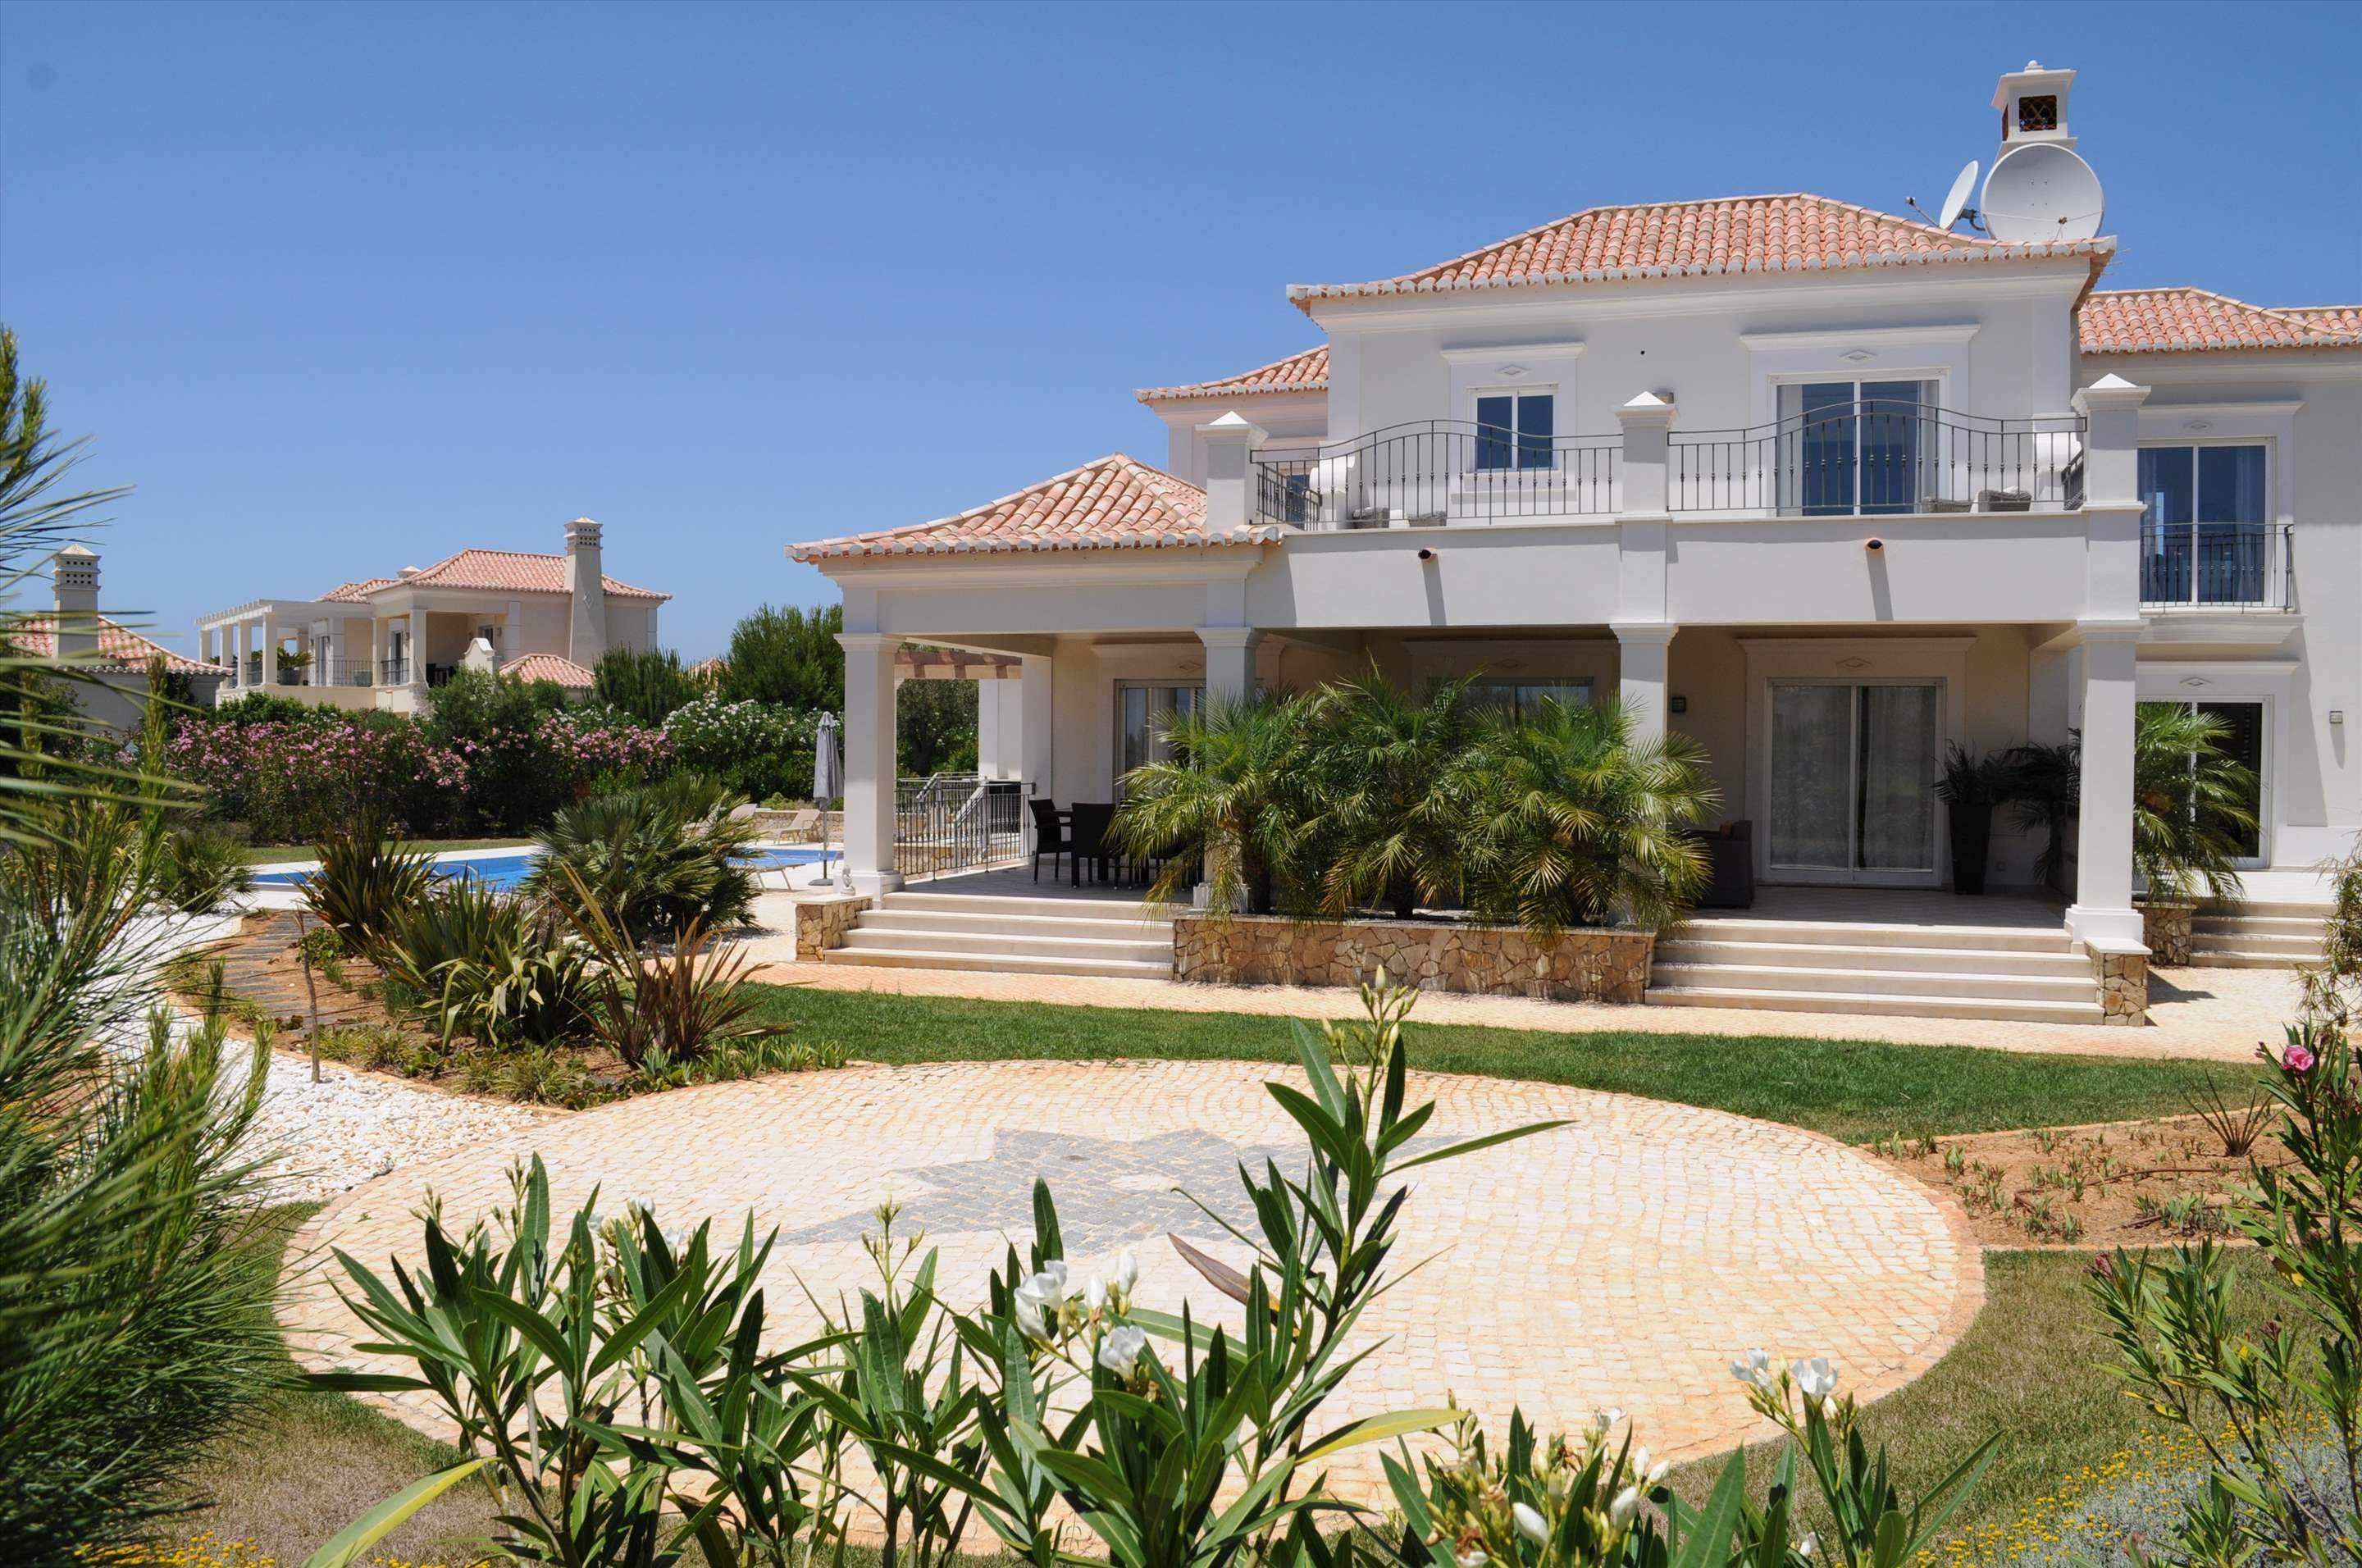 Martinhal Luxury Villa No.18, 5 bedroom villa in Martinhal Sagres, Algarve Photo #10